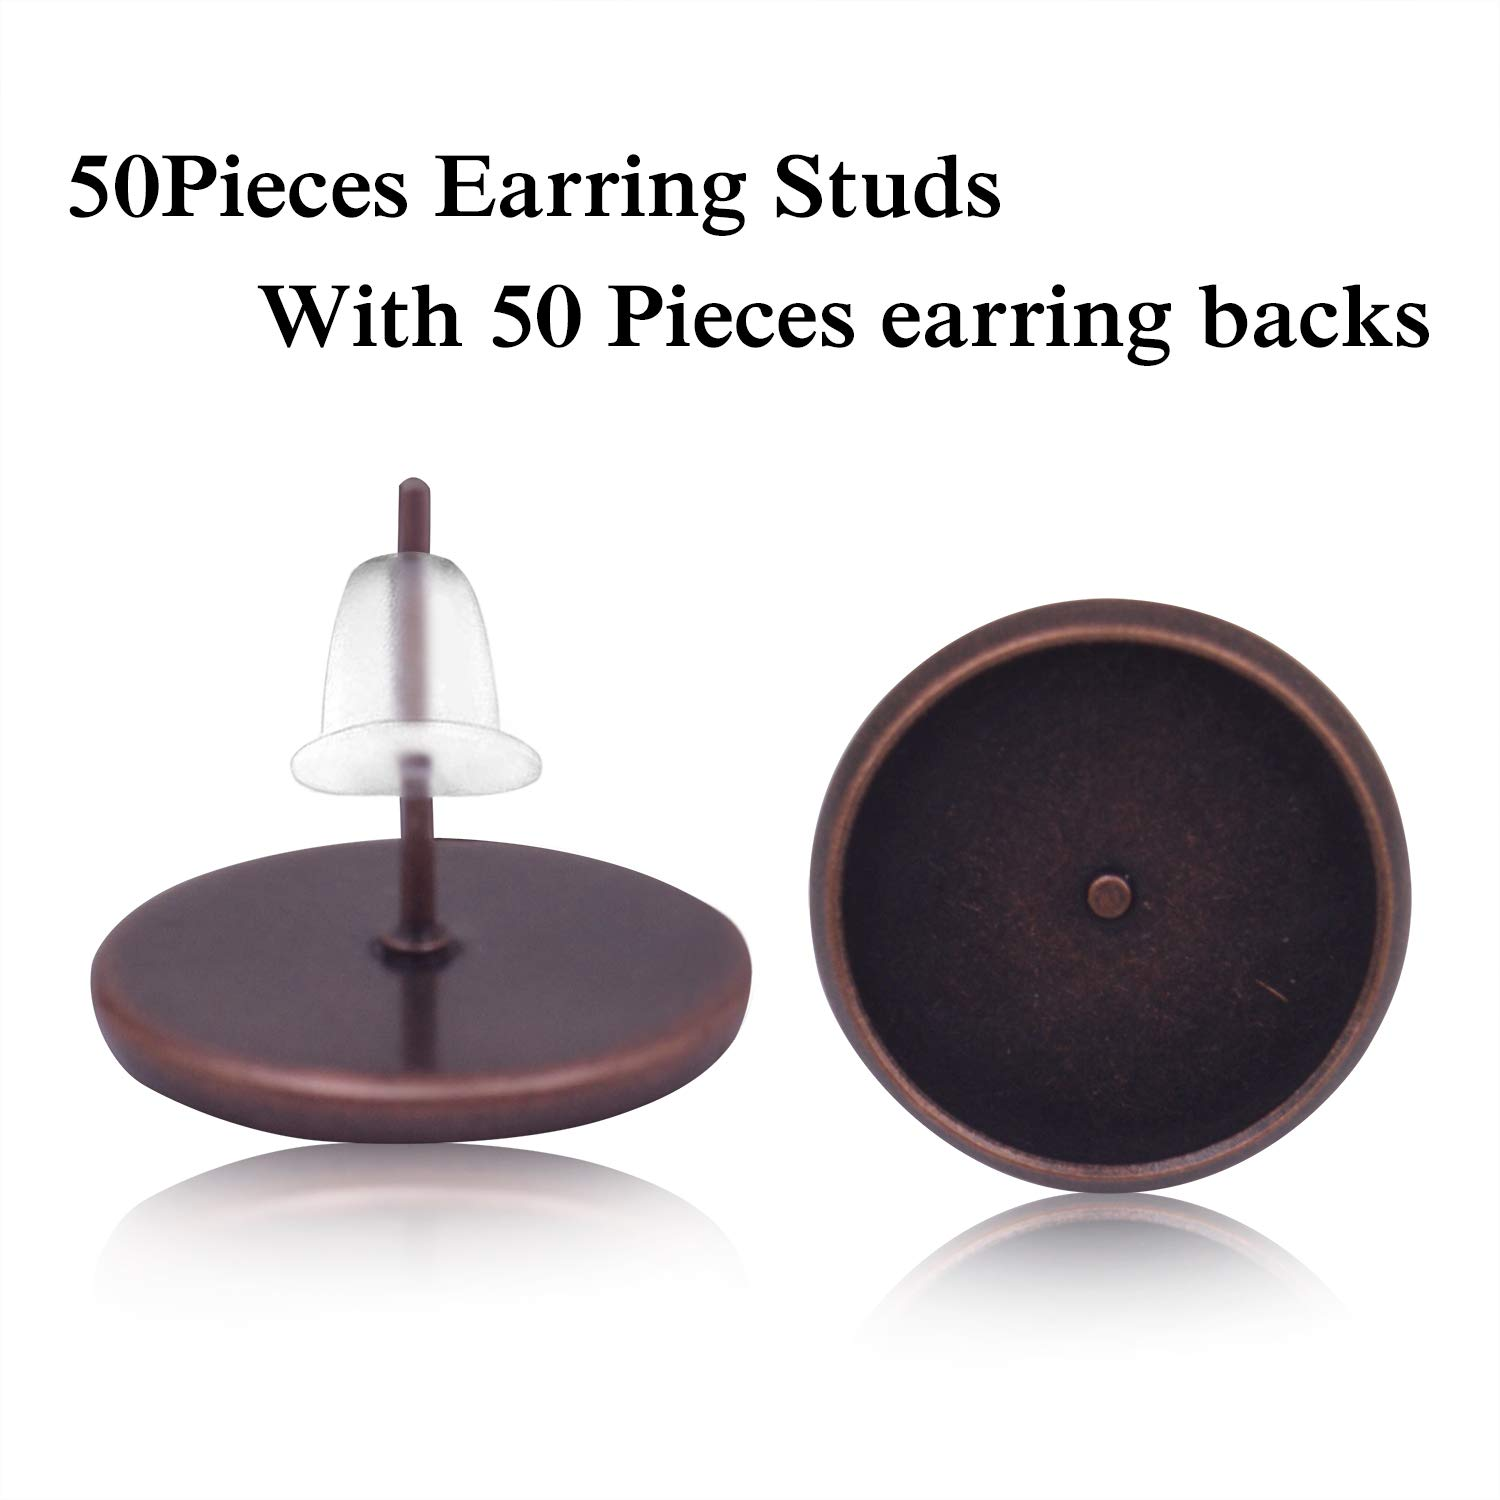 BronaGrand 50 Pieces Stainless Steel Stud Silver Earring Cabochon Setting Post Cup for 8mm and 50 Pieces Clear Rubber Earring Safety Backs